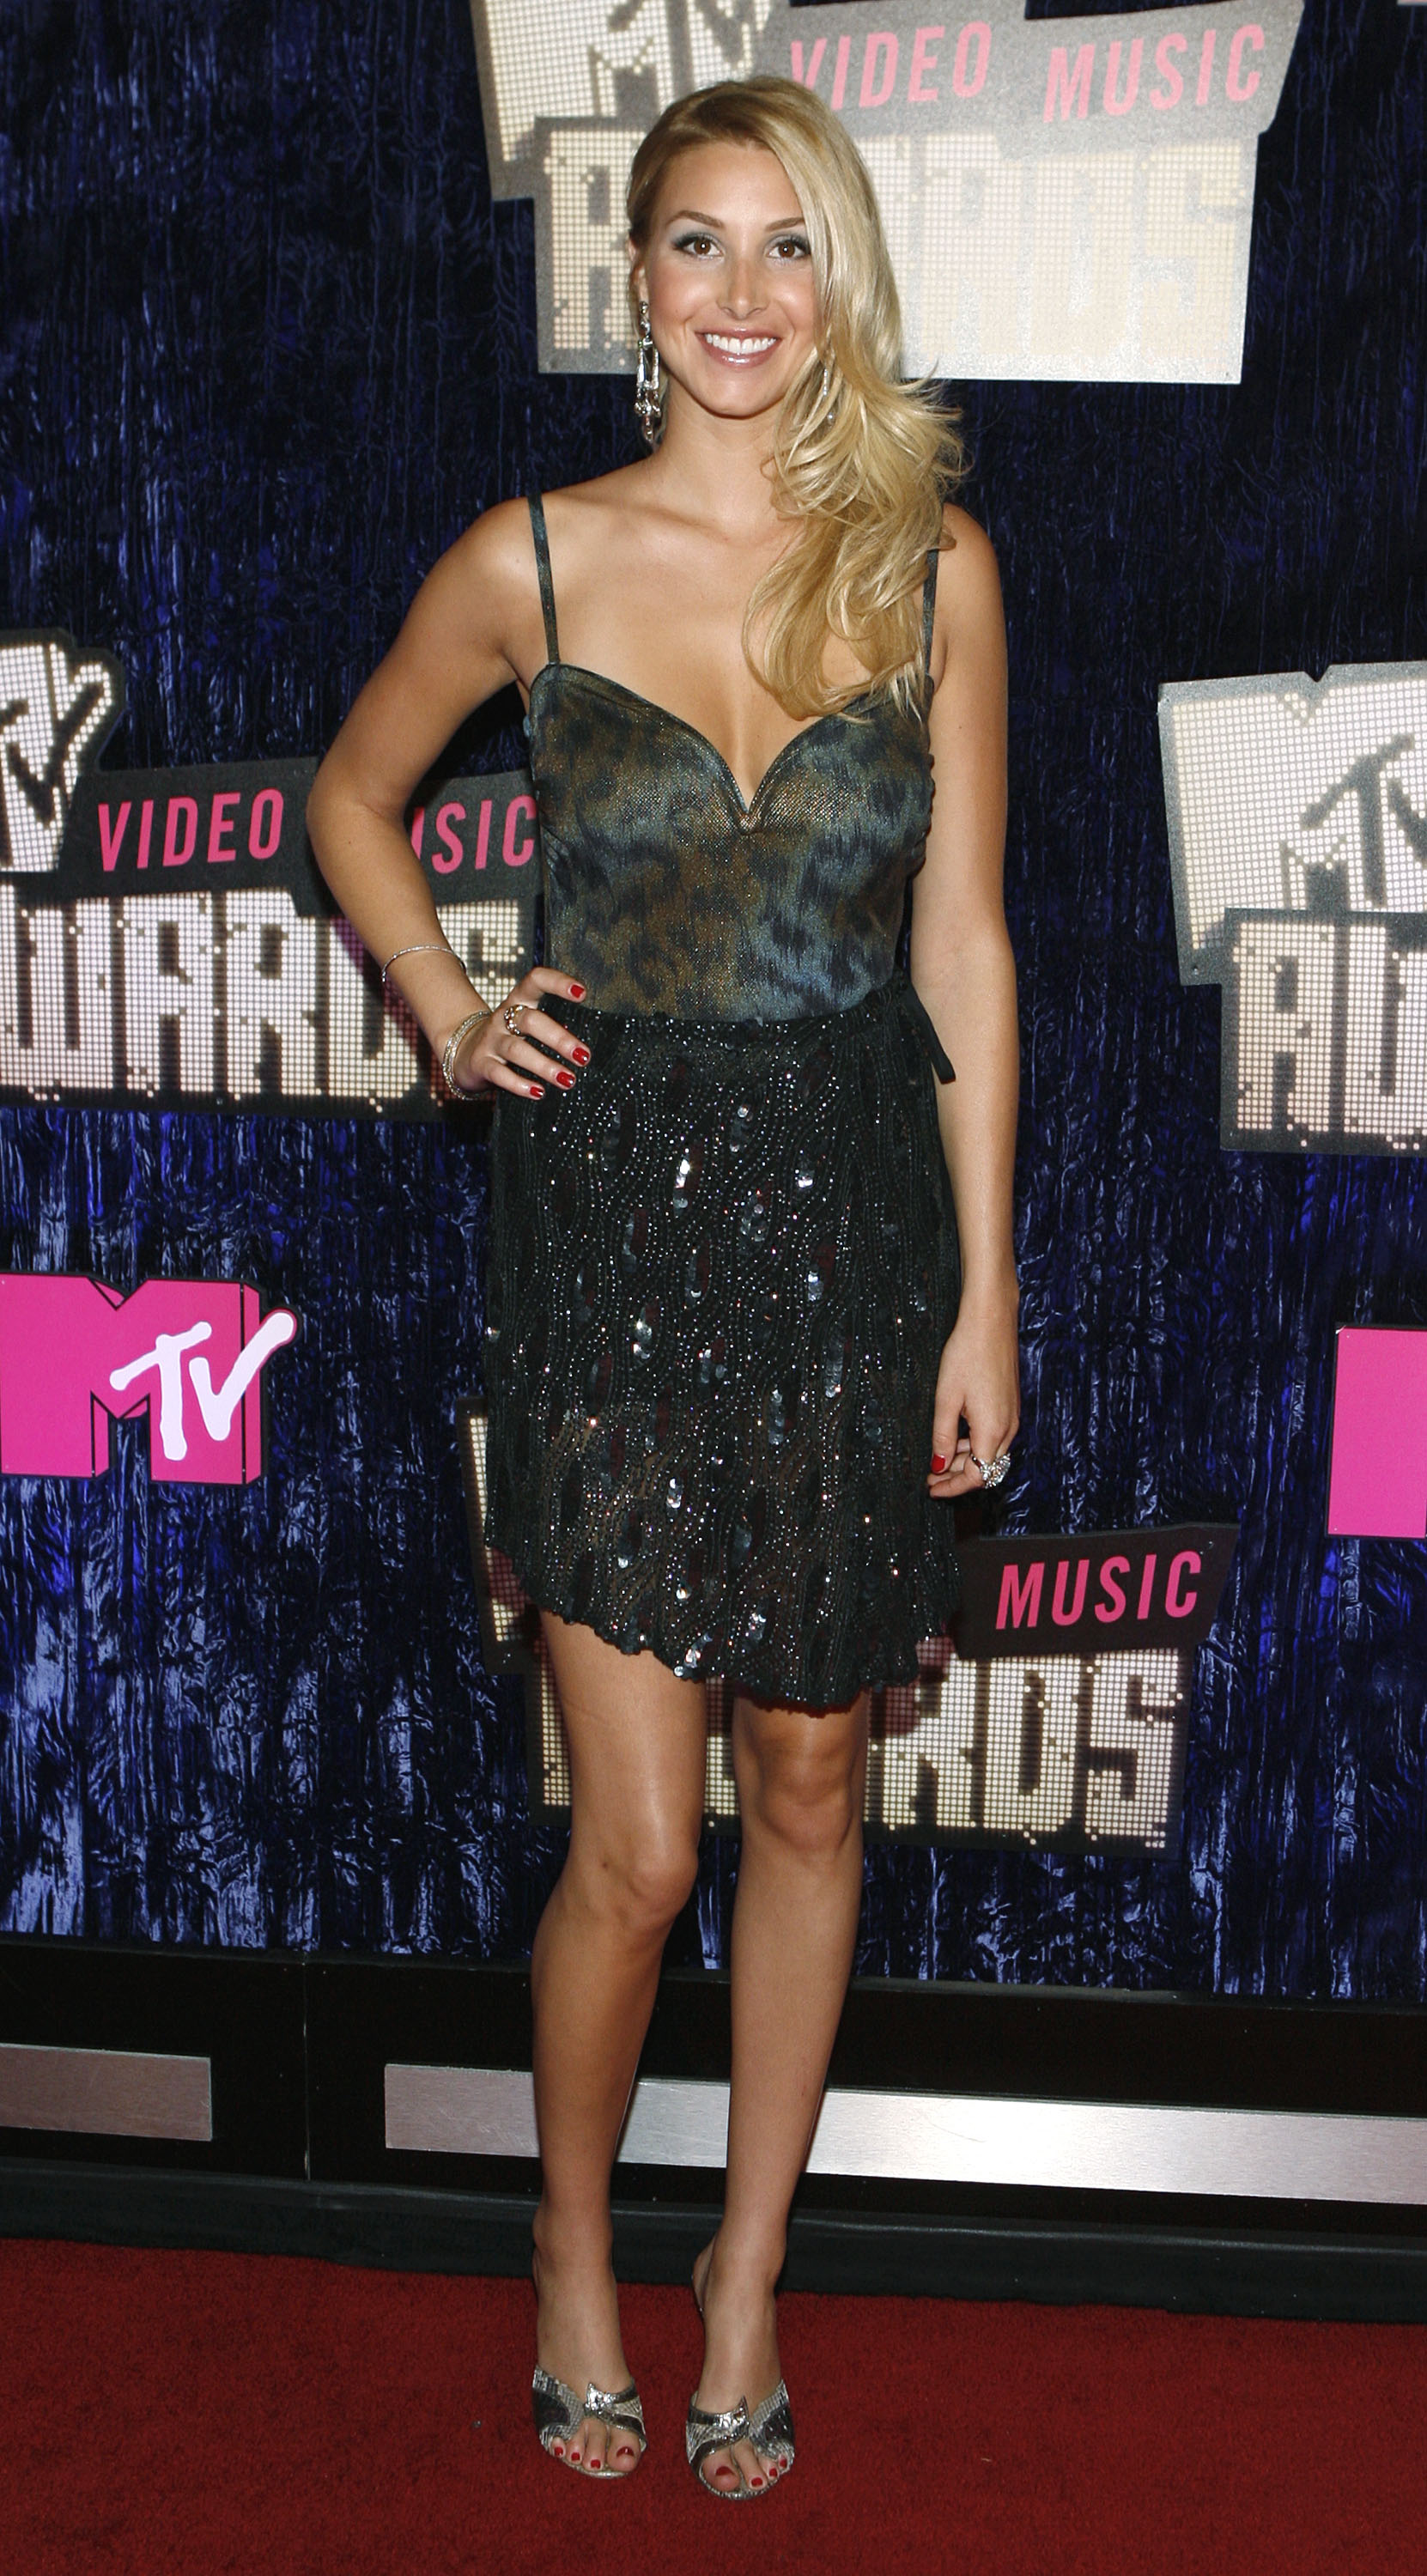 MTV Awards Arrivals